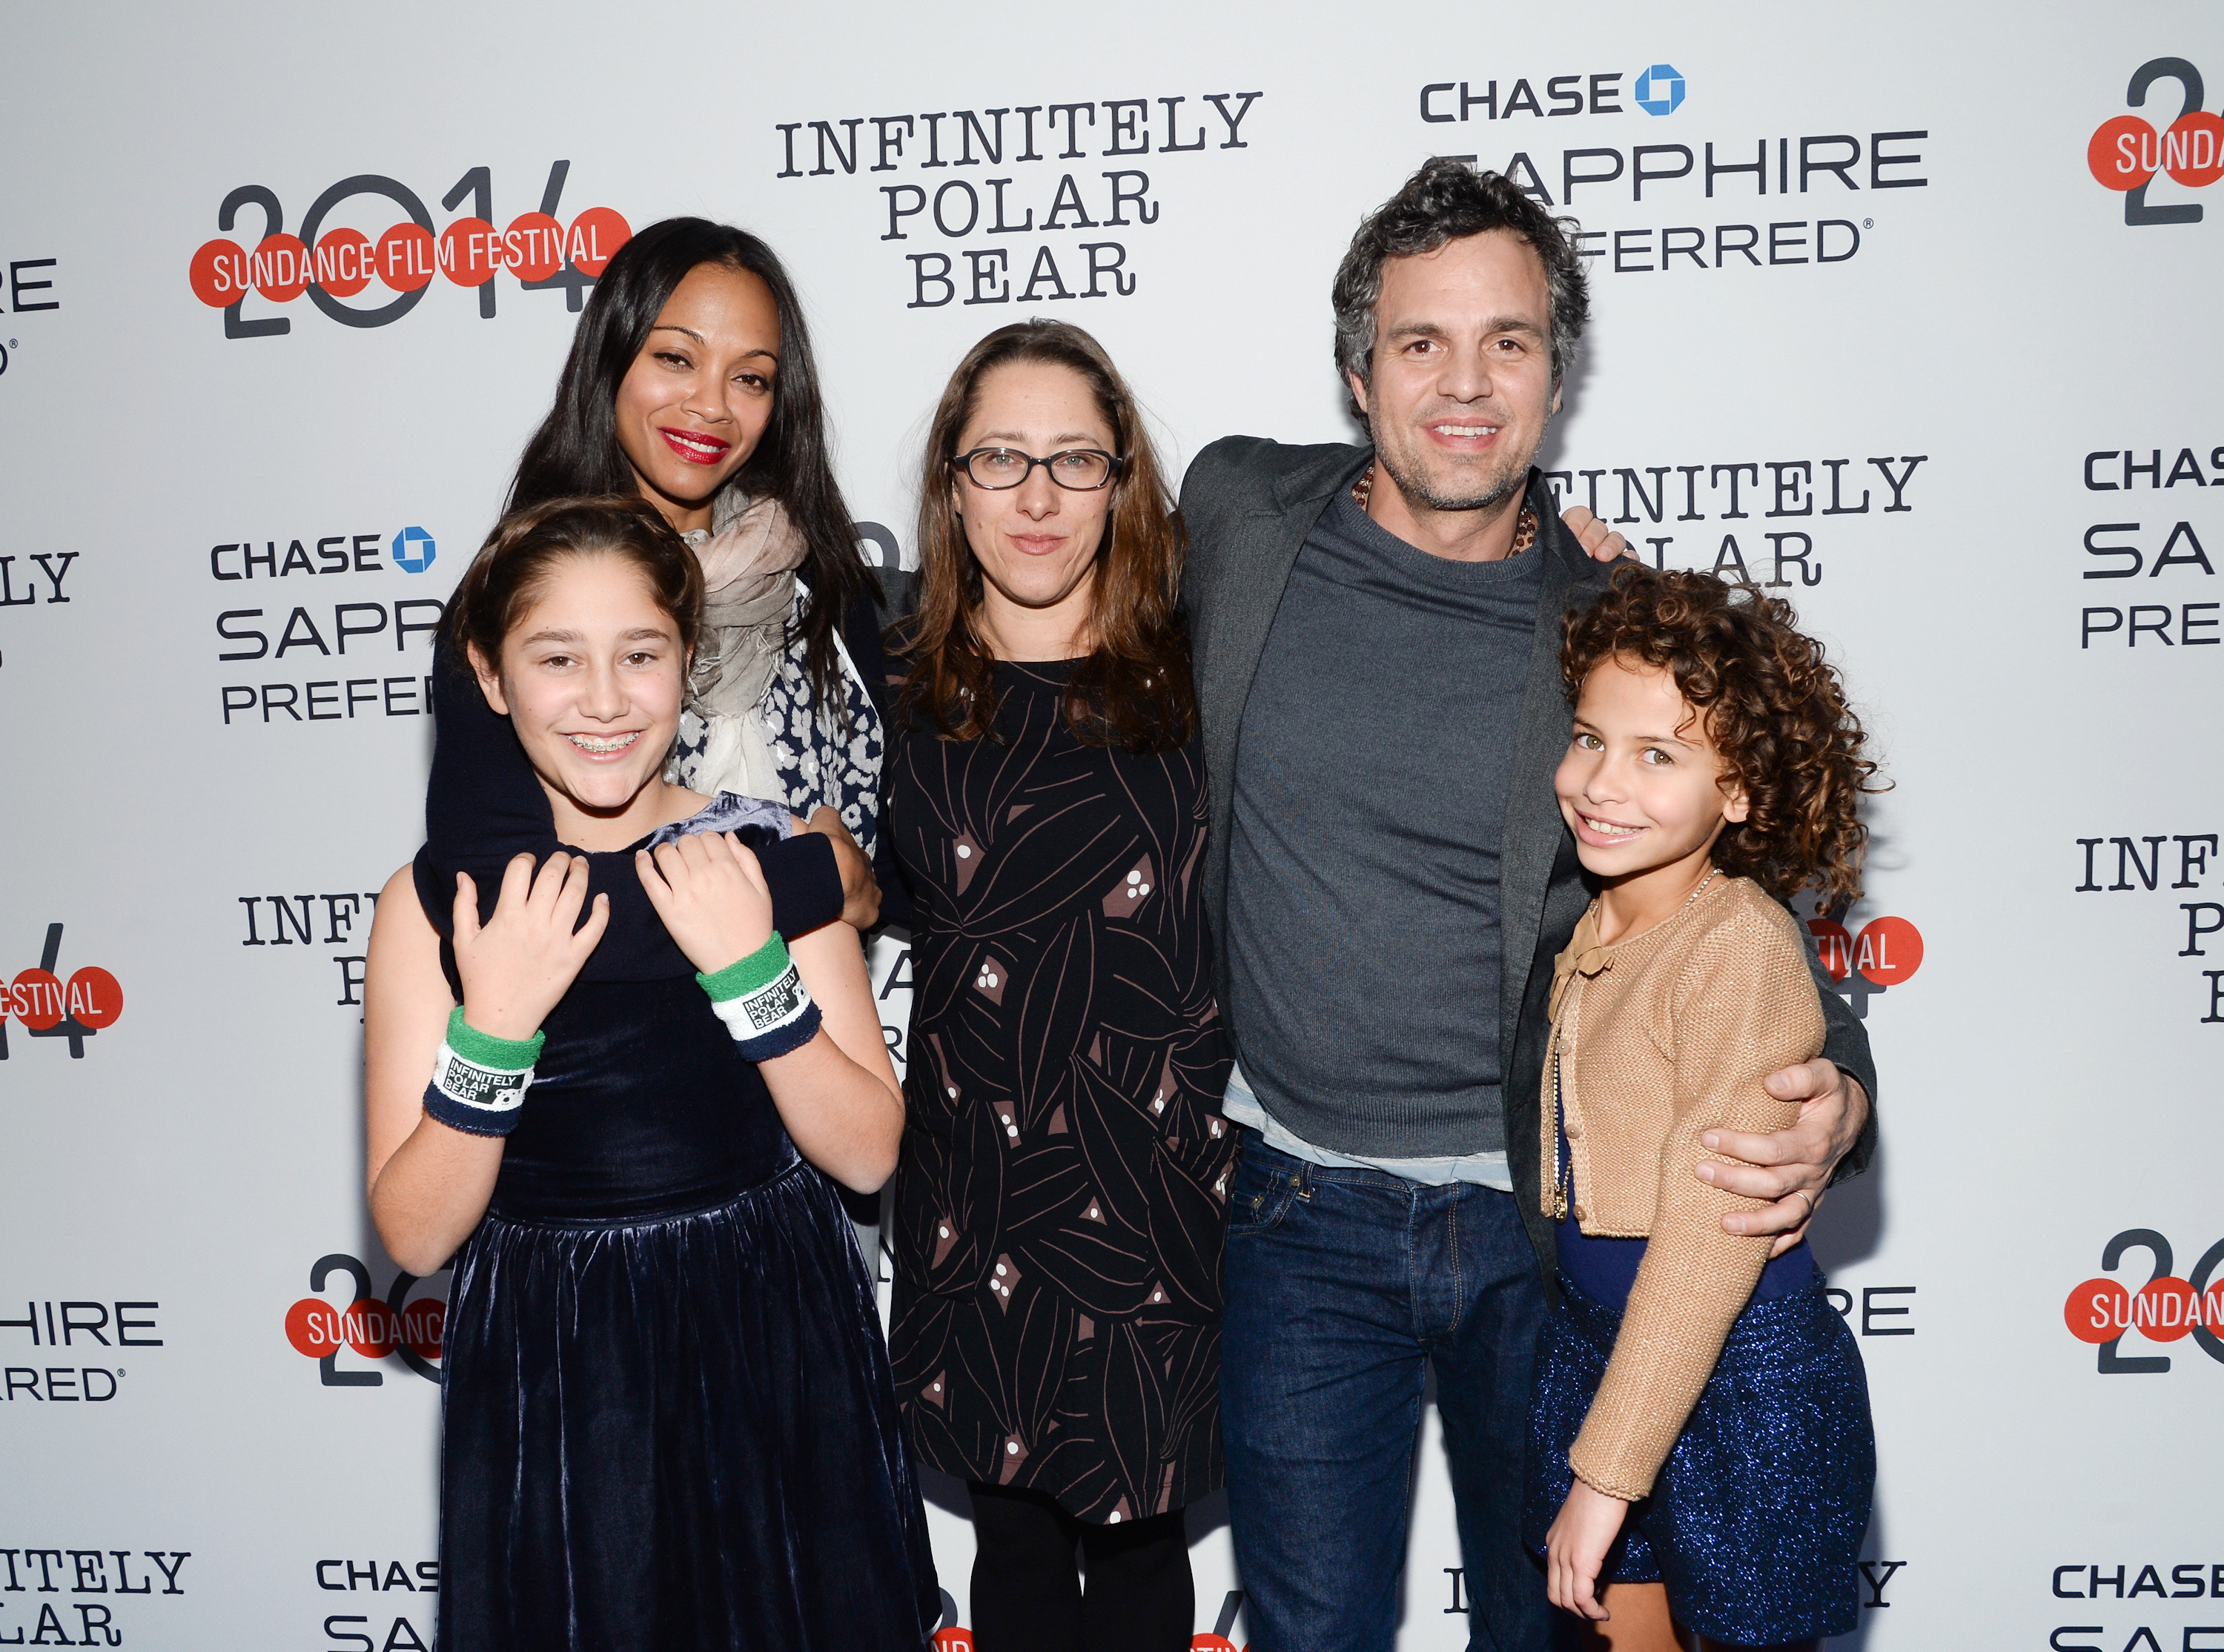 """Director Maya Forbes, center, poses with cast members, from, left, Imogene Wolodarsky, Zoe Saldana, Mark Ruffalo and Ashley Aufderheide at the """"Infinitely Polar Bear"""" premiere party hosted by Chase Sapphire Preferred during the Sundance Film Festival on Saturday, Jan. 18, 2014 in Park City, Utah. (Photo by Evan Agostini/Invision for Chase Sapphire Preferred/AP Images)"""